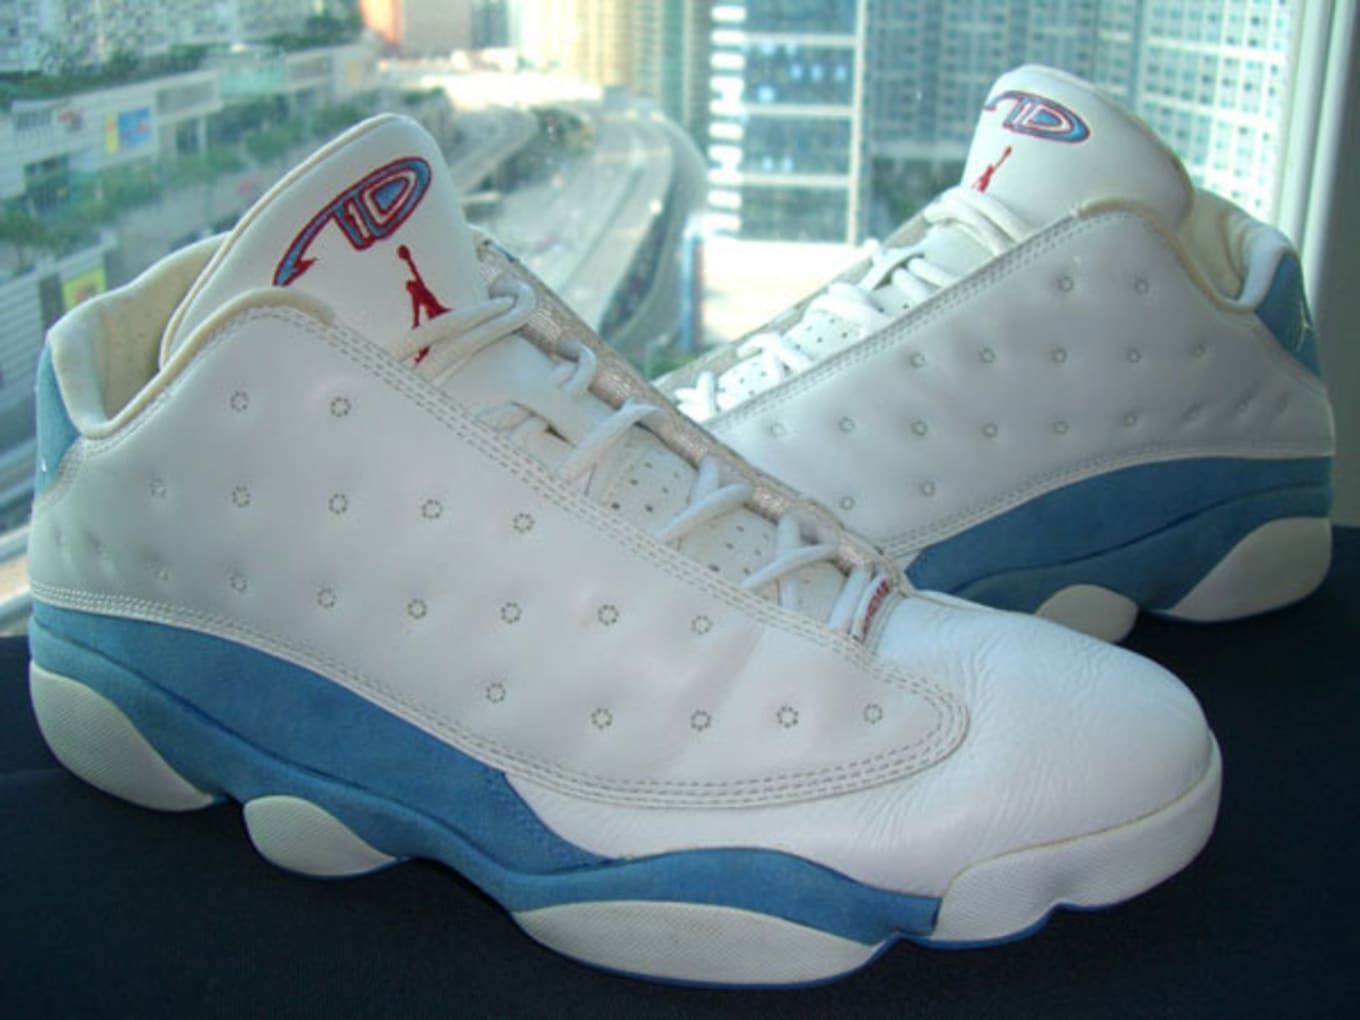 Mike Bibby Air Jordan XIII 13 Low